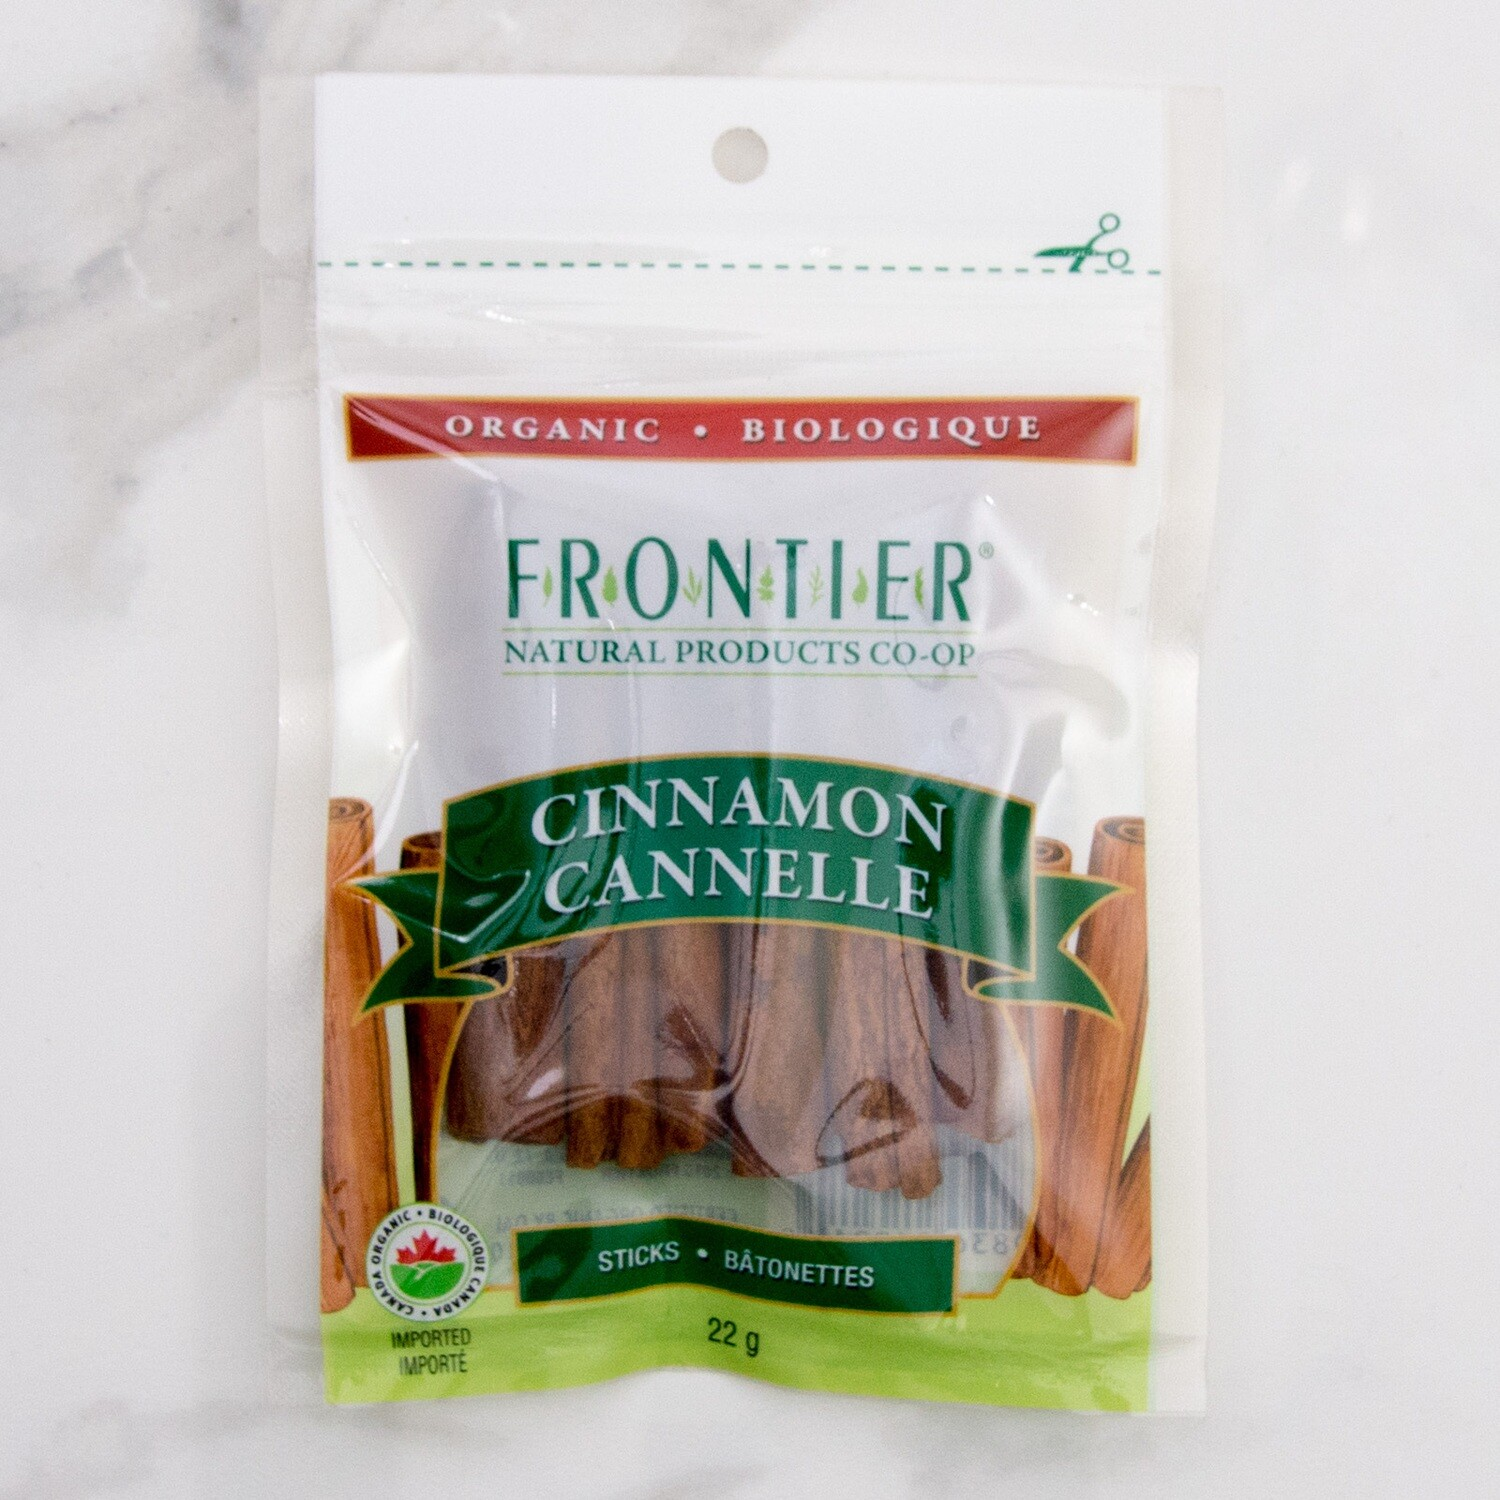 FRONTIER Cinnamon Sticks 22g